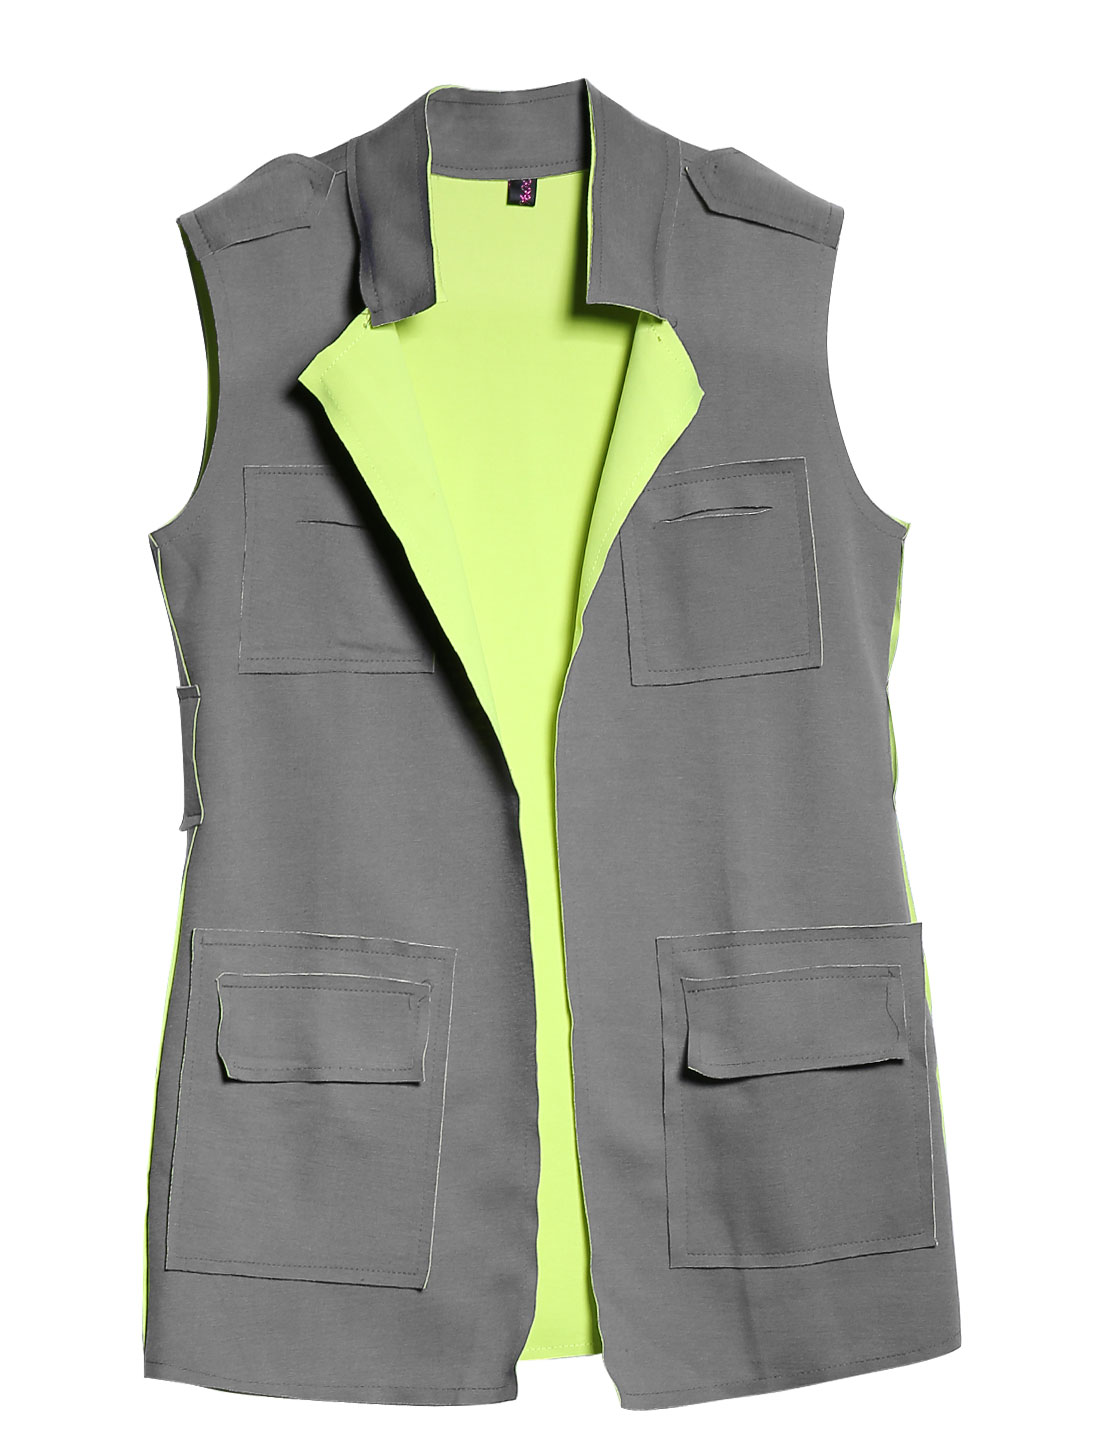 Women Front Opening Ubound Seam Design Sleeveless Casual Long Vest Warm Gray XS